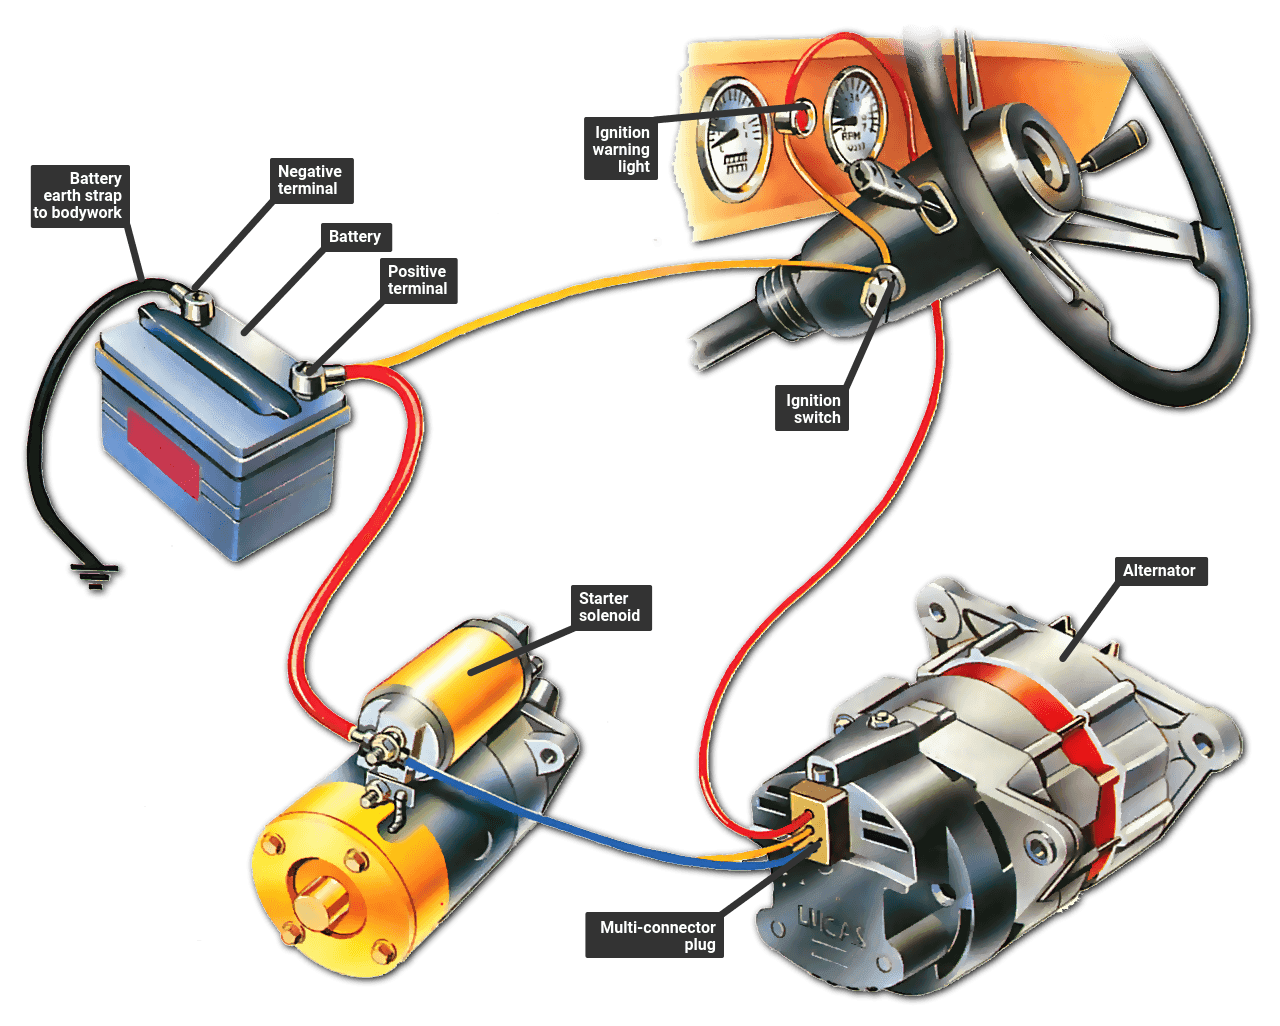 Troubleshooting The Ignition Warning Light How A Car Works Honda Lead Wiring Diagram